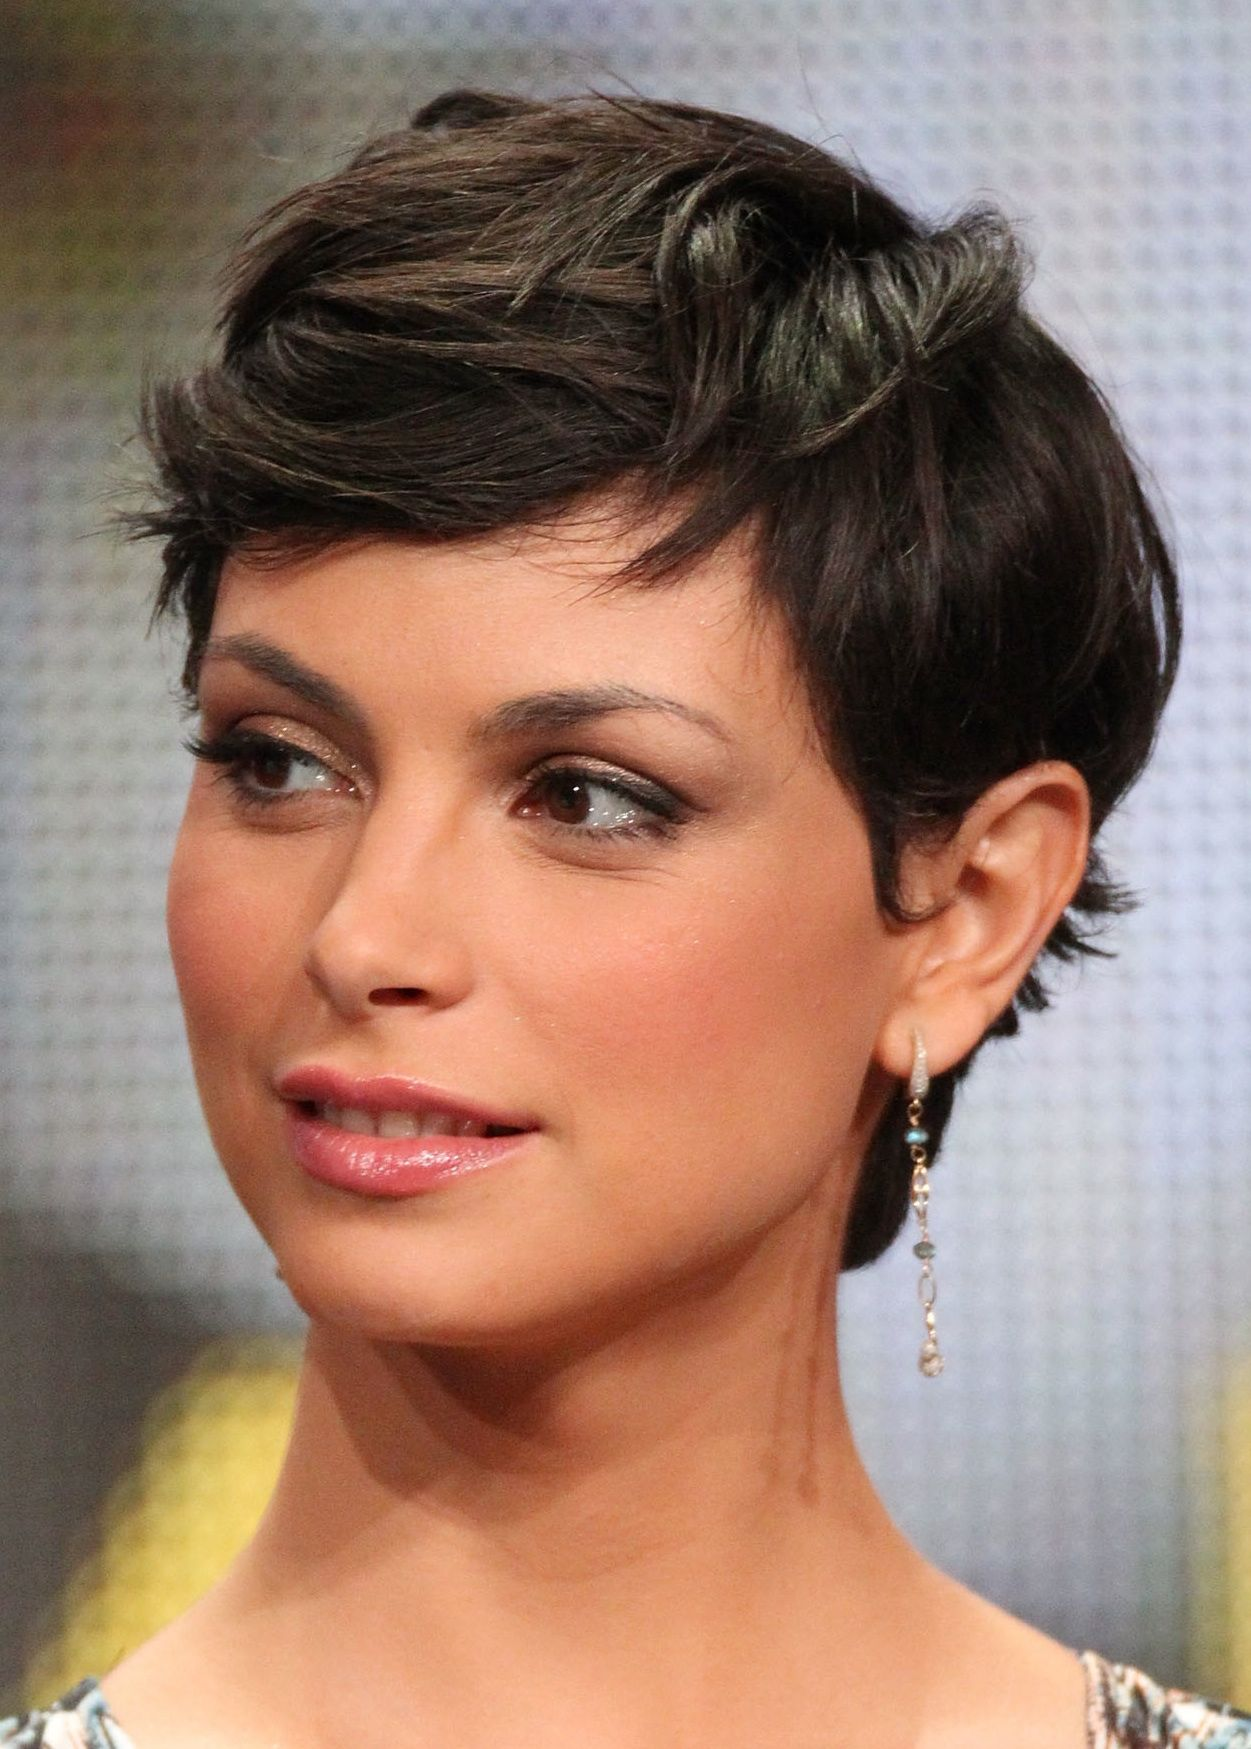 Thick Black Hair Hairstyles A Gallery Of Short Brown Hair From Pixies To Shags Pixie